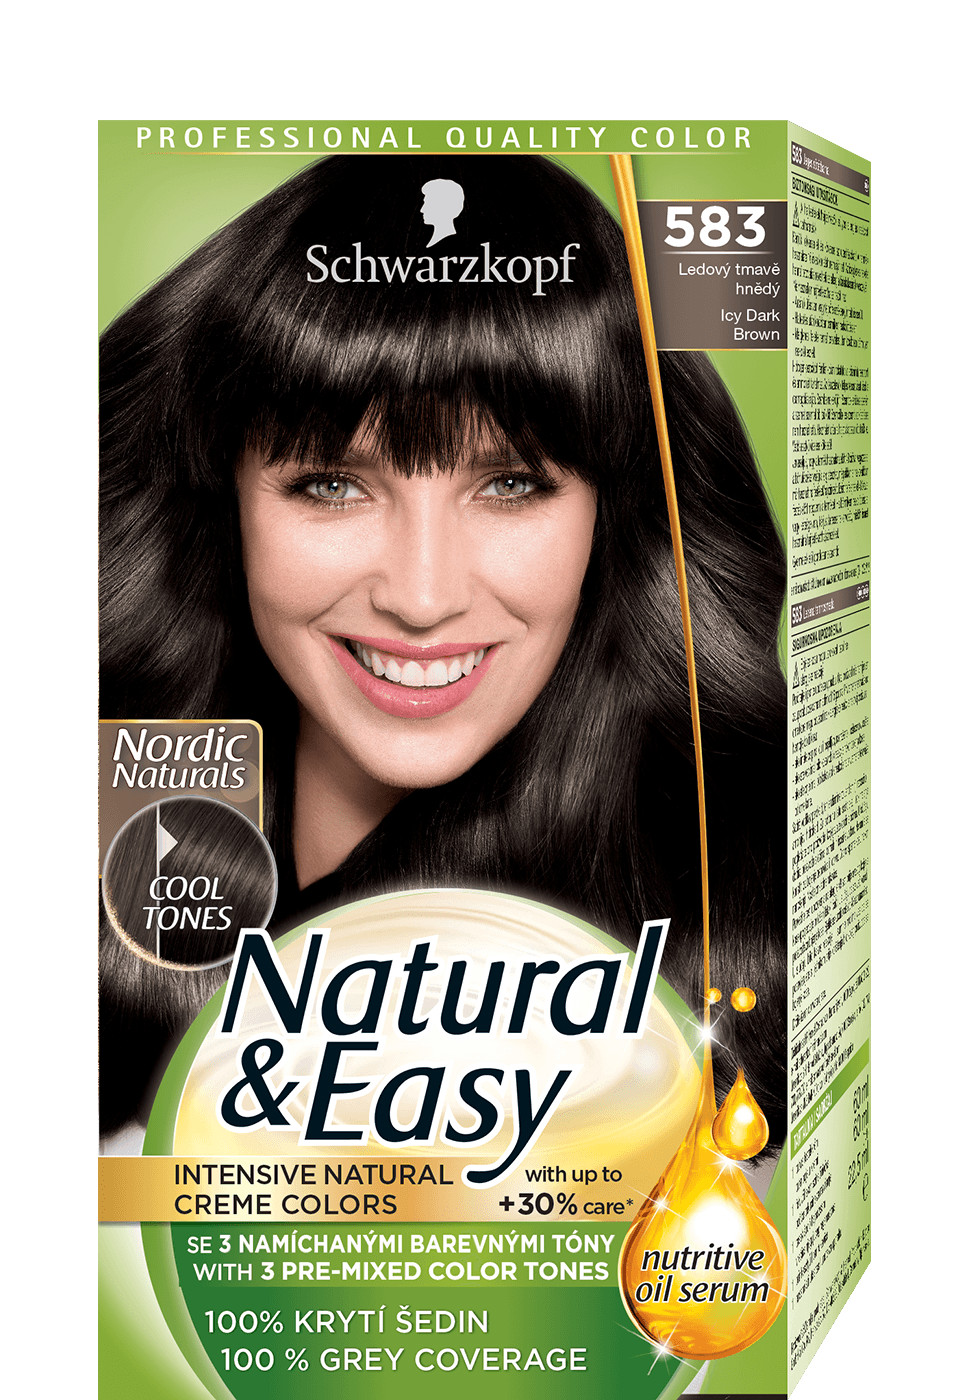 natural_easy_com_brown_hair_583_icy_dark_brown_970x1400